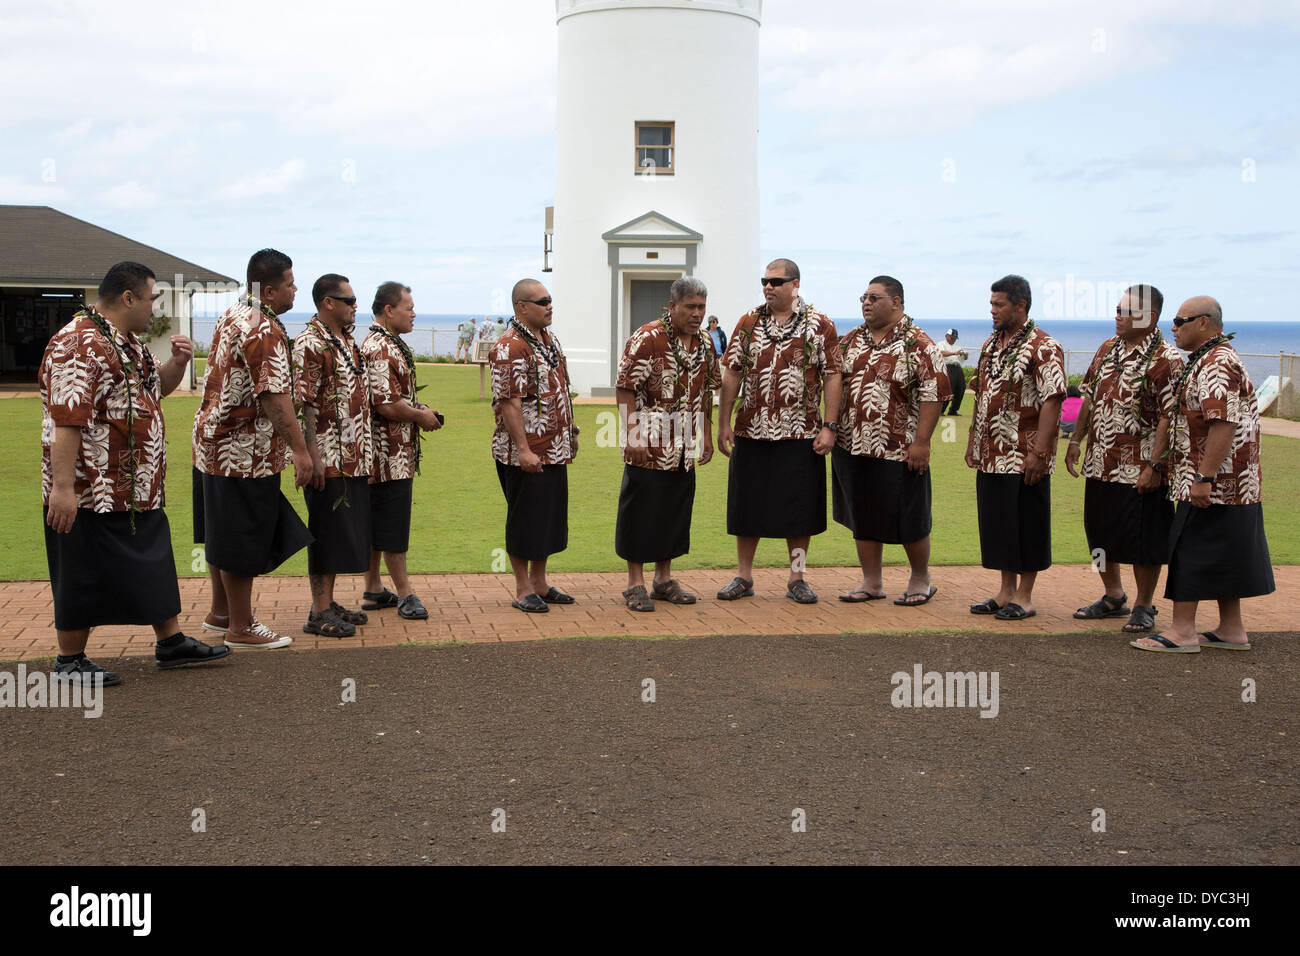 Samoan gospel singers performing at Kilauea Point Lighthouse - Stock Image